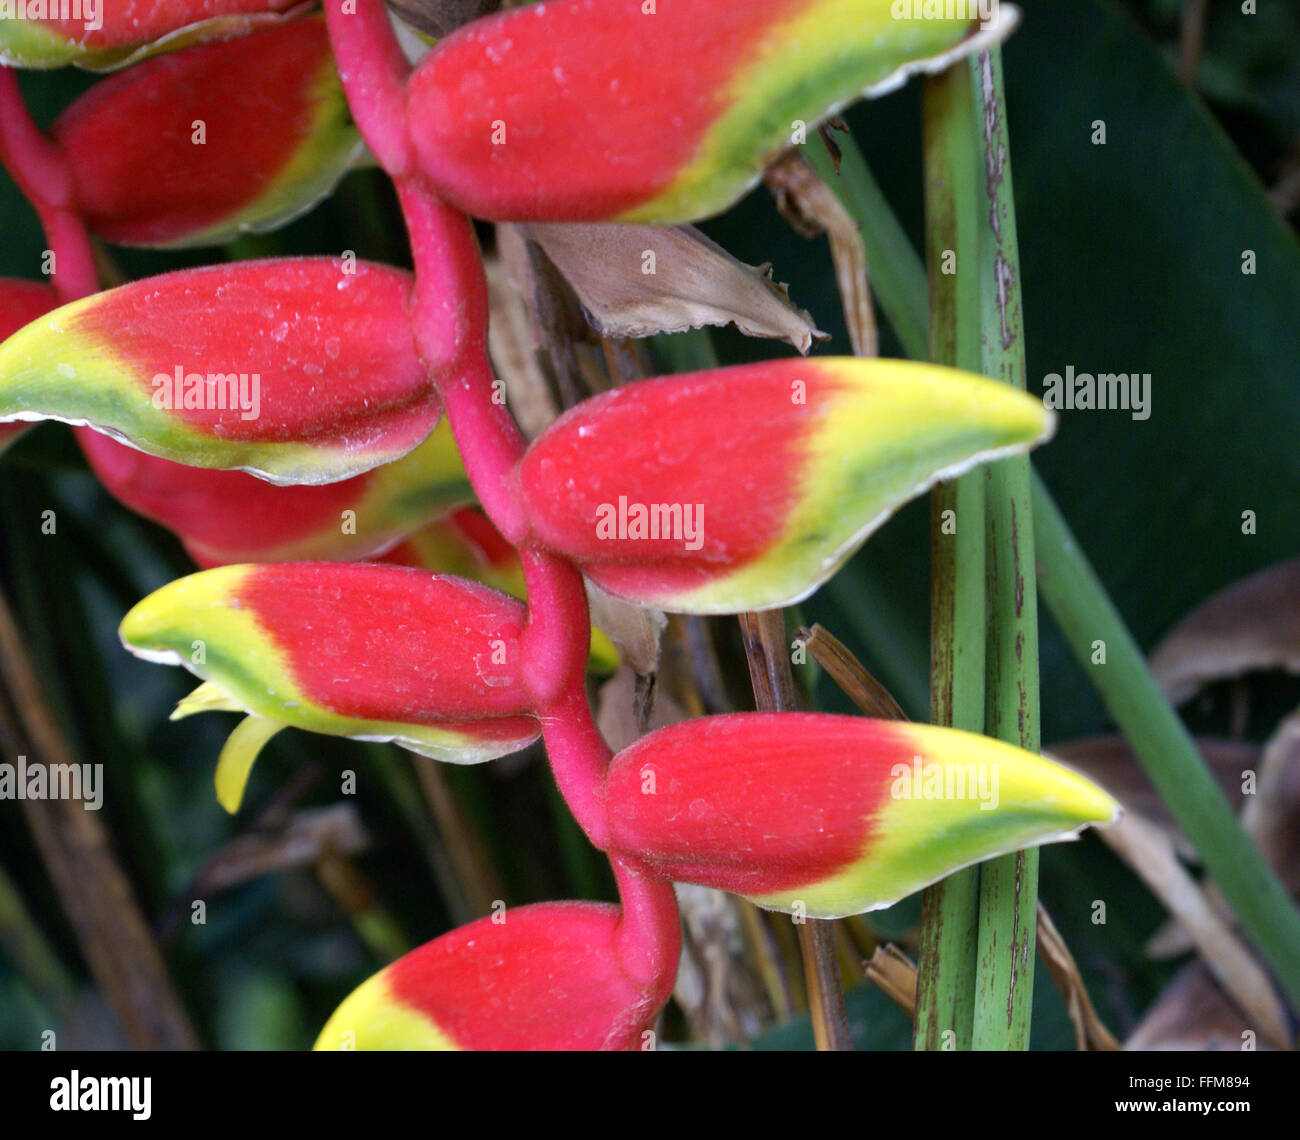 heliconia rostrata, hanging lobster claw, plante herbacée vivace